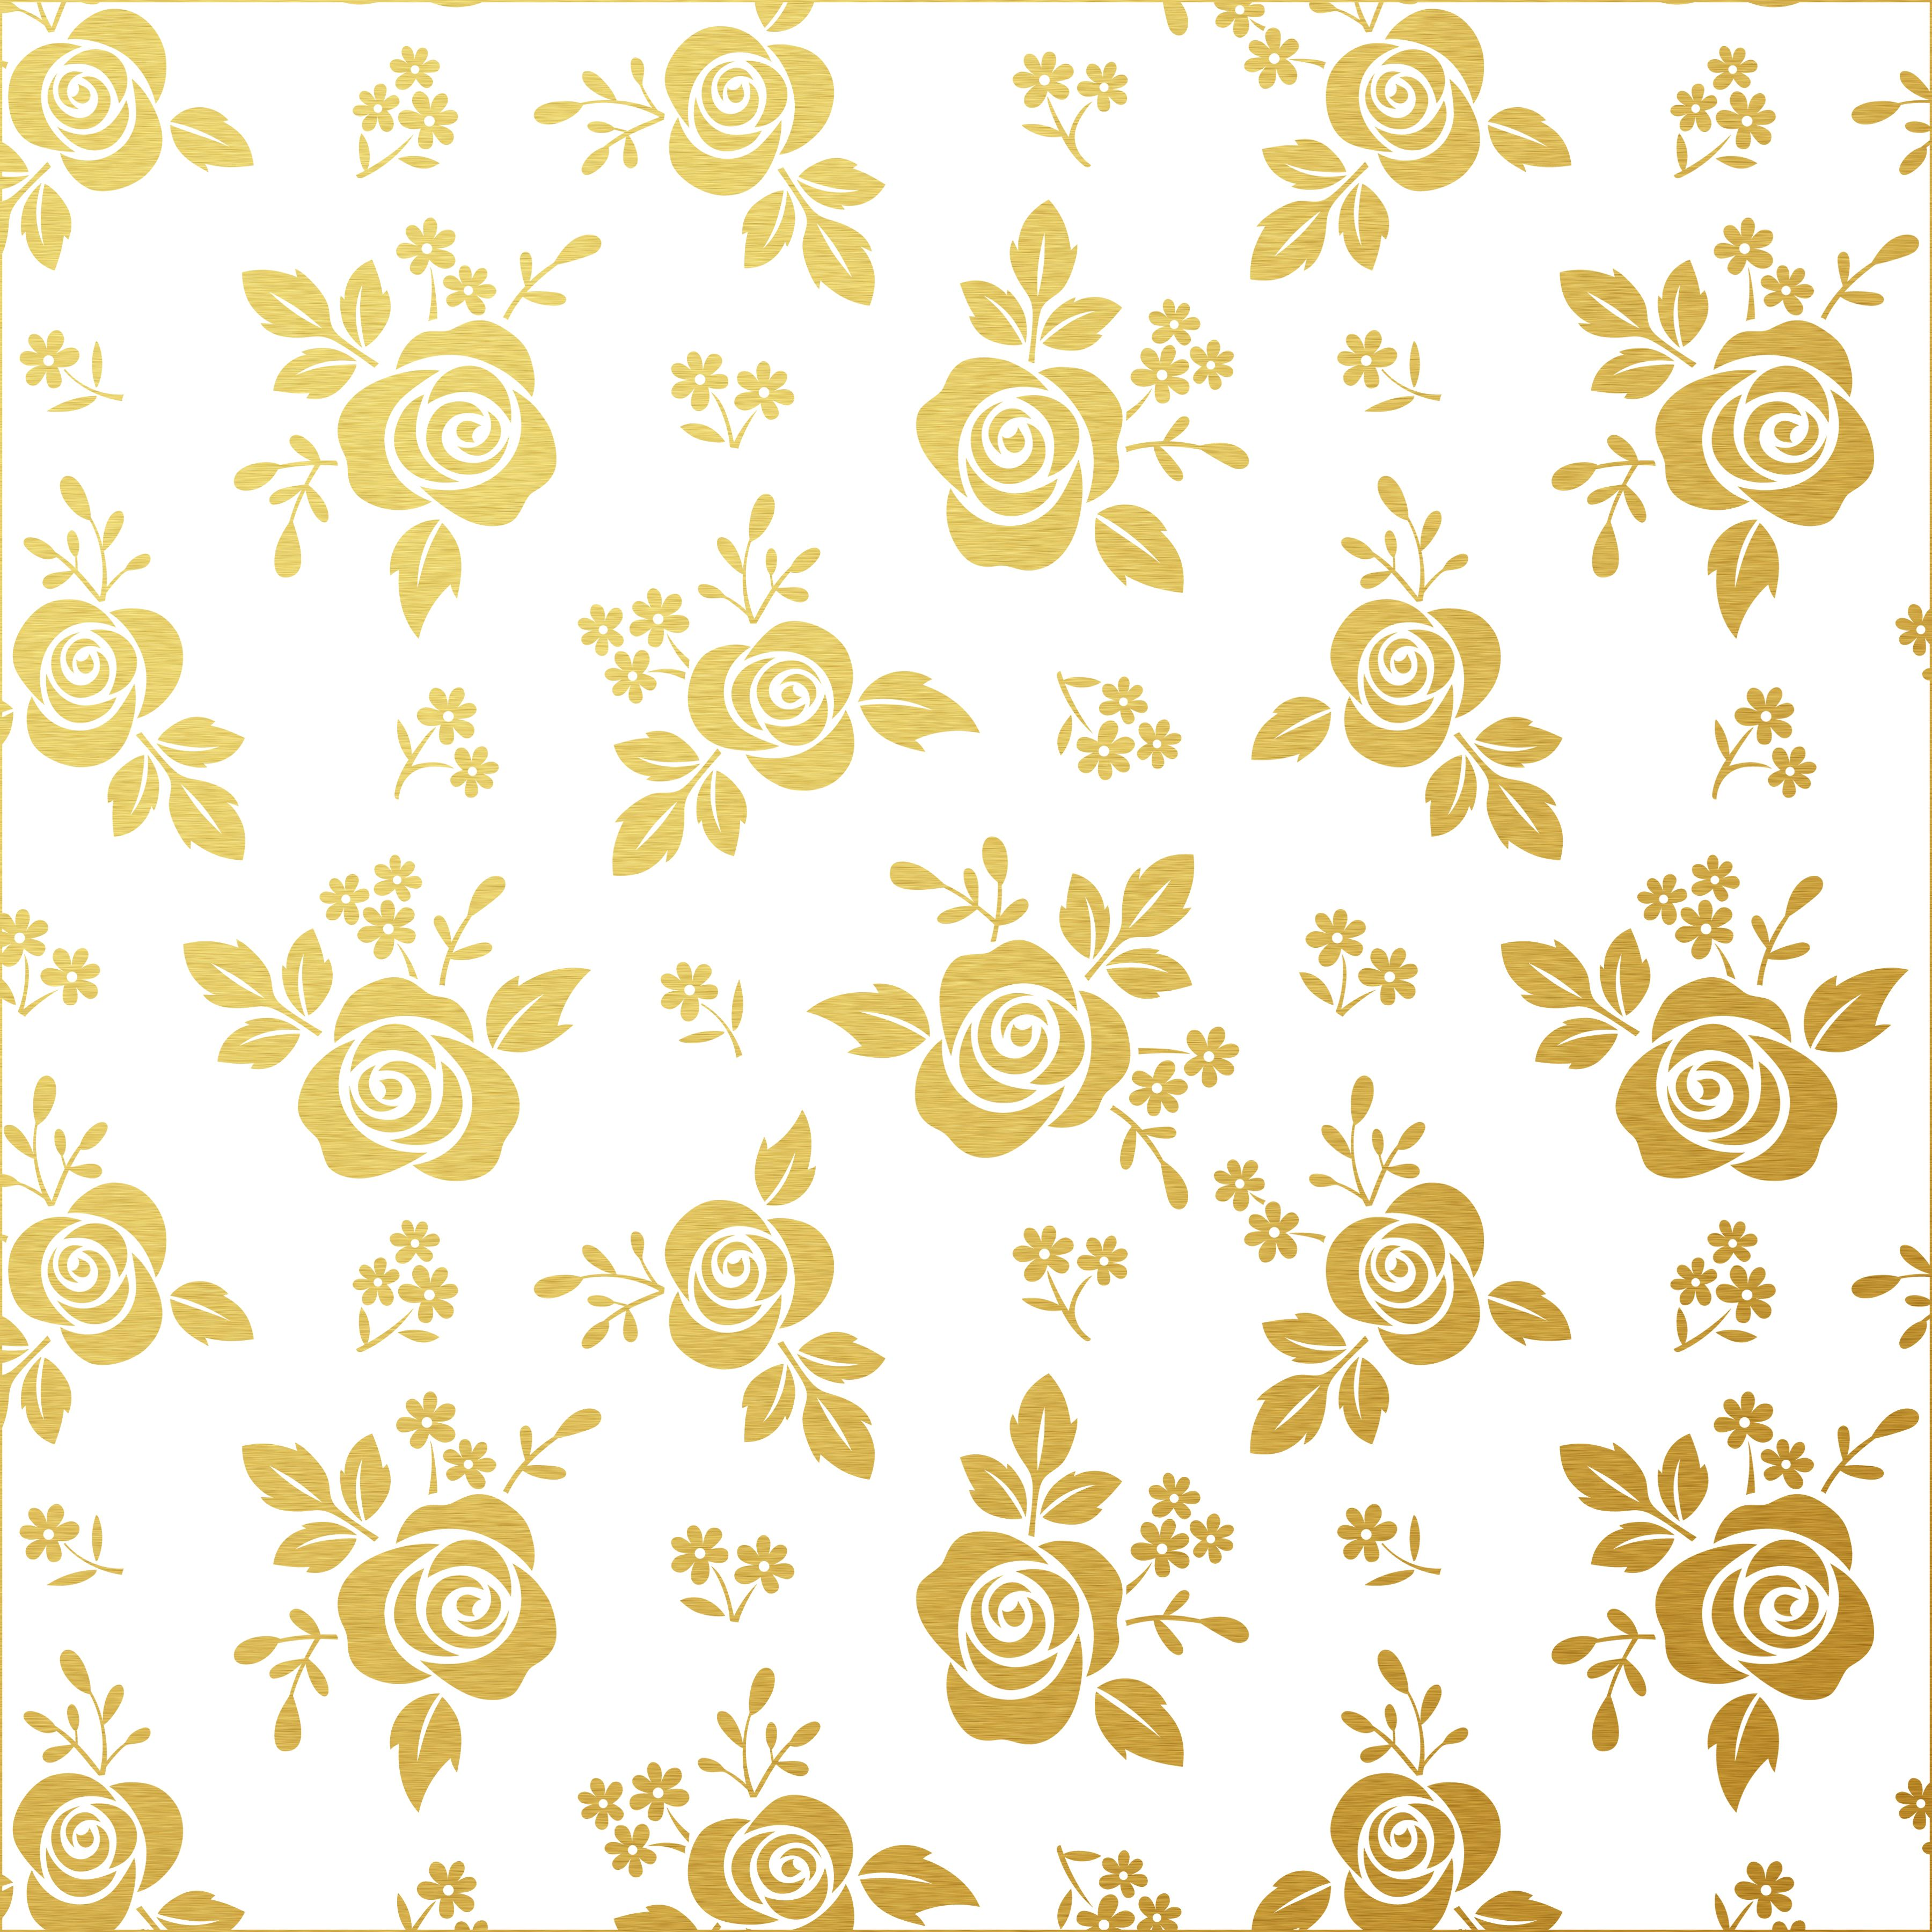 Pin By On Pinterest Scrapbook Paper Paper